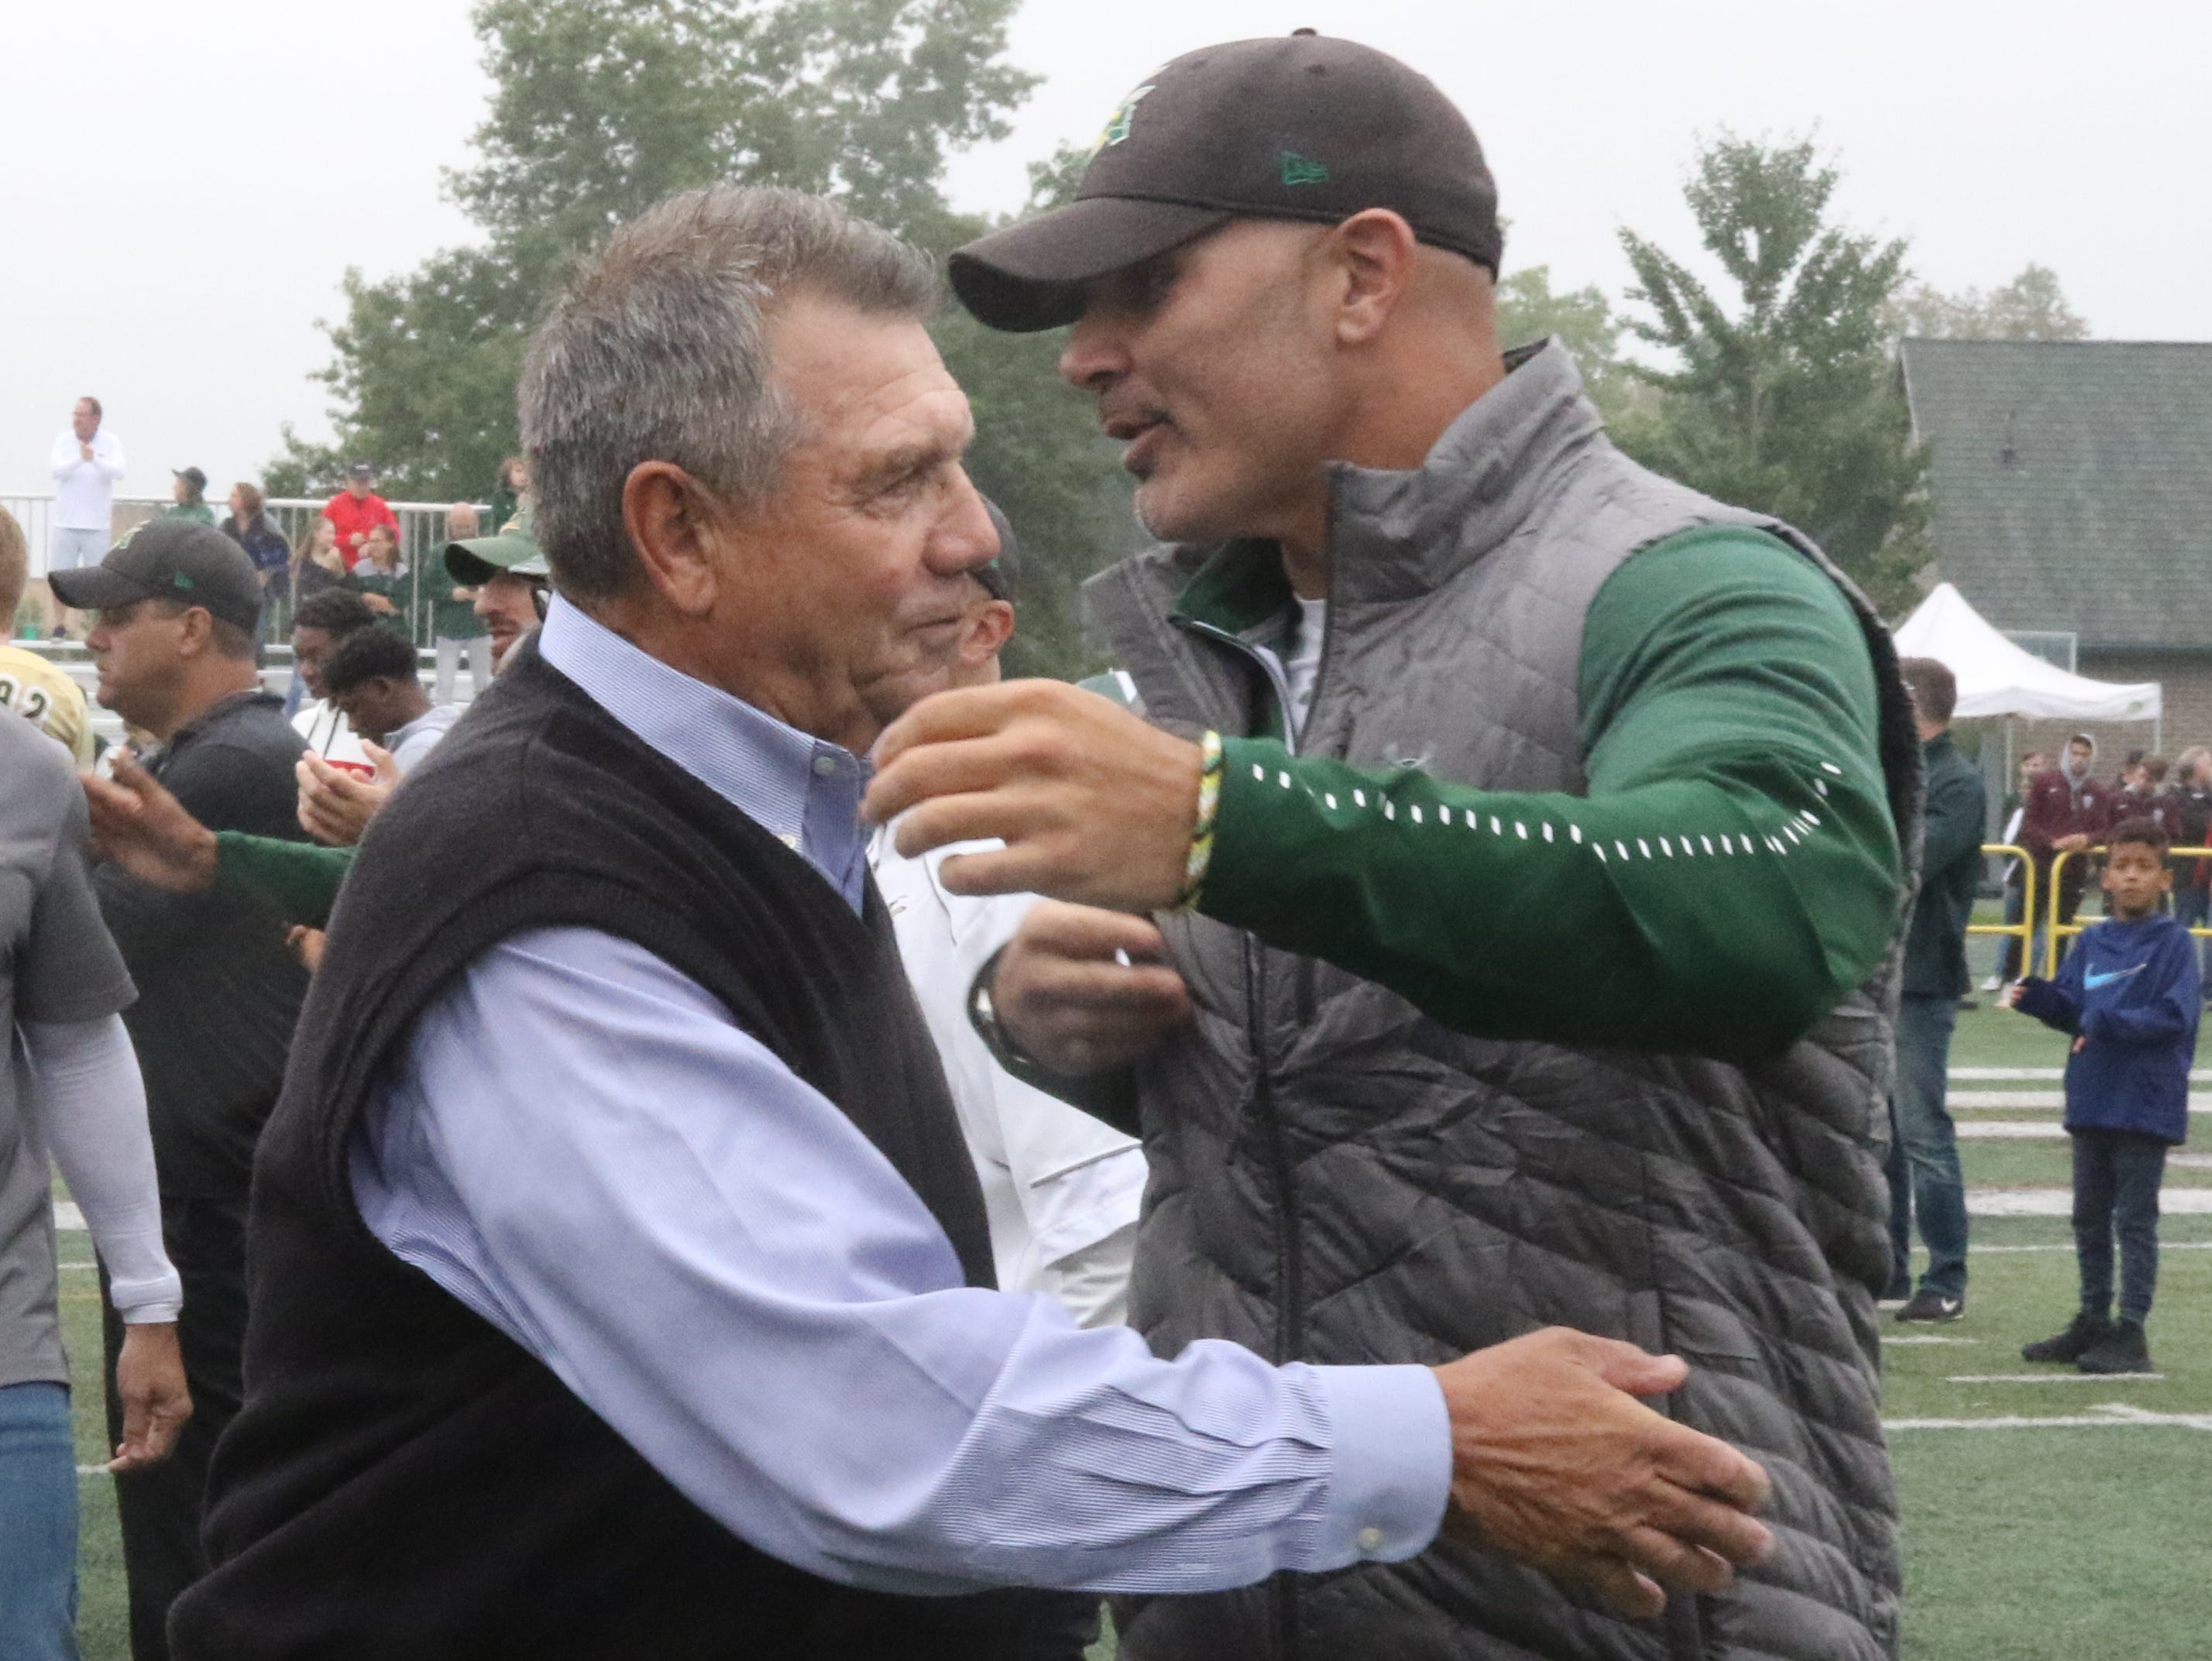 Former St. Joseph Coach, Tony Karcich hugs present St. Joseph coach Augie Hoffman as part of a ceremony honoring Karcich and naming the St. Joseph field after him.